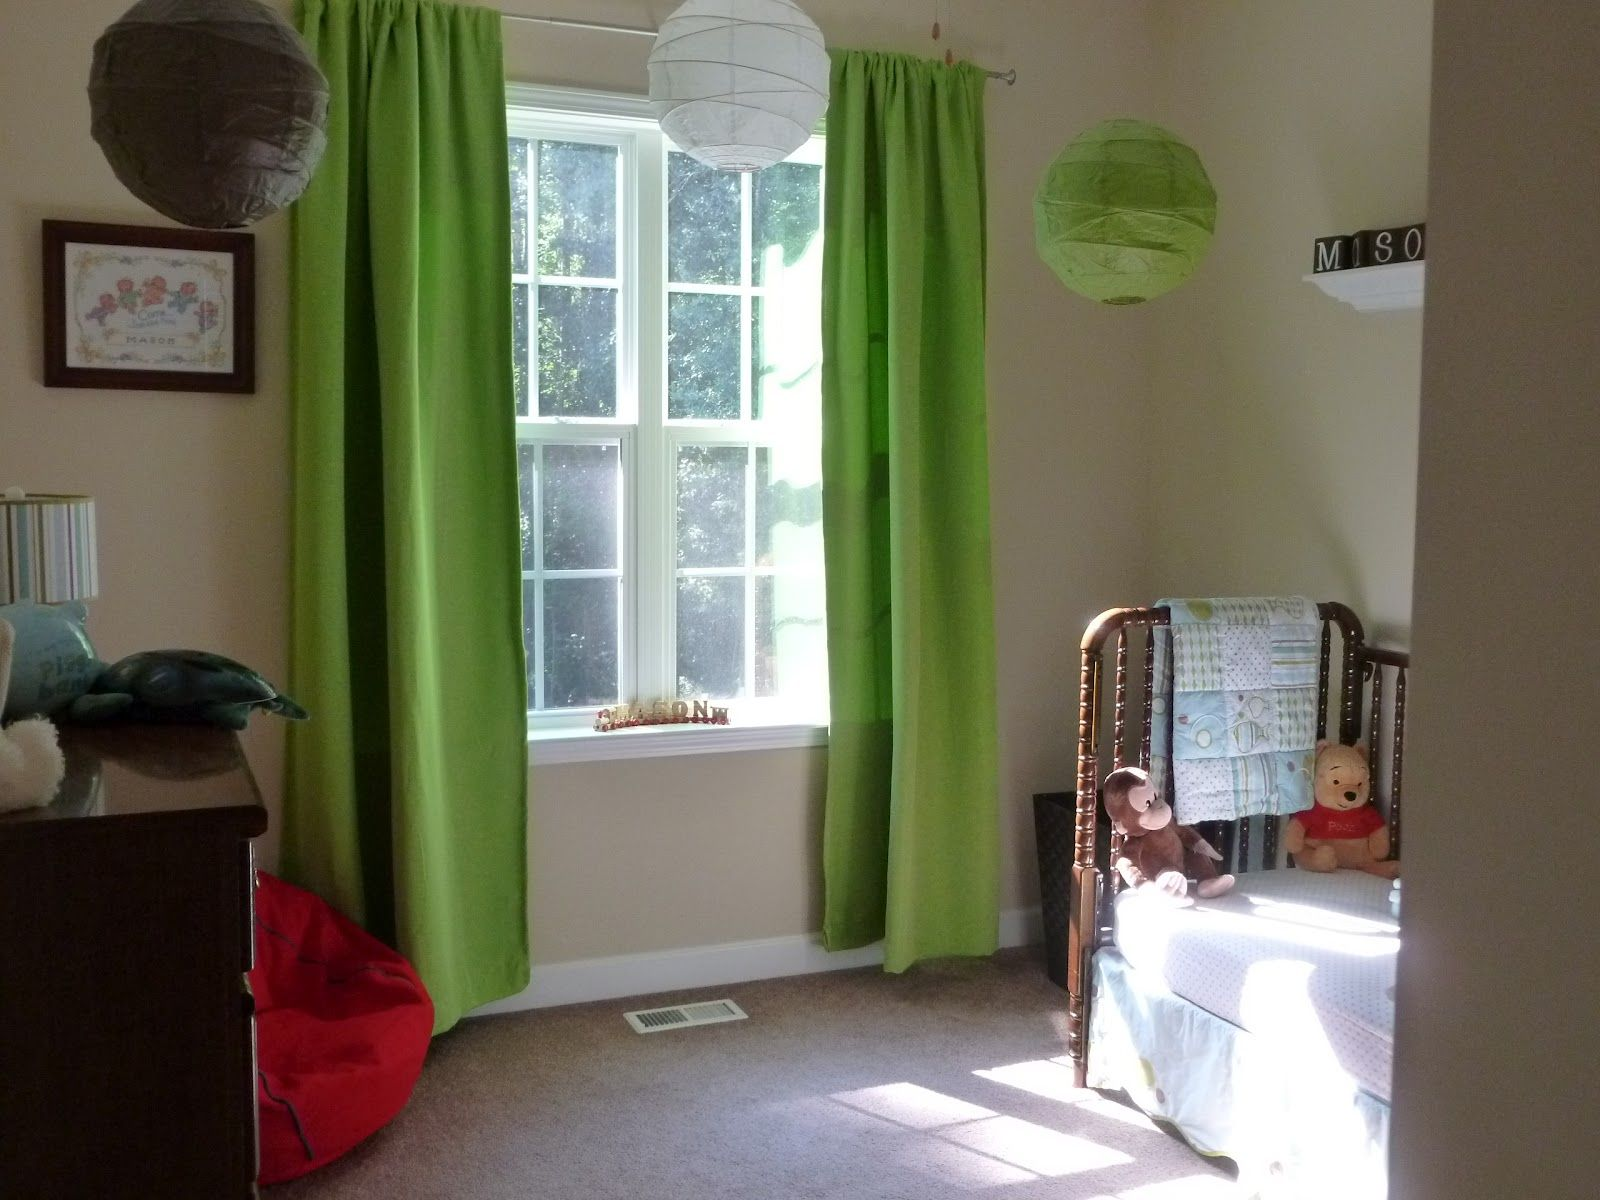 interior-green-fabric-window-curtains-on-the-hook-and-colorful-lantern-on-the-ceiling-connected-by-cream-wall-pleasing-look-of-master-bedroom-window-treatments-prettify-your-bedroom